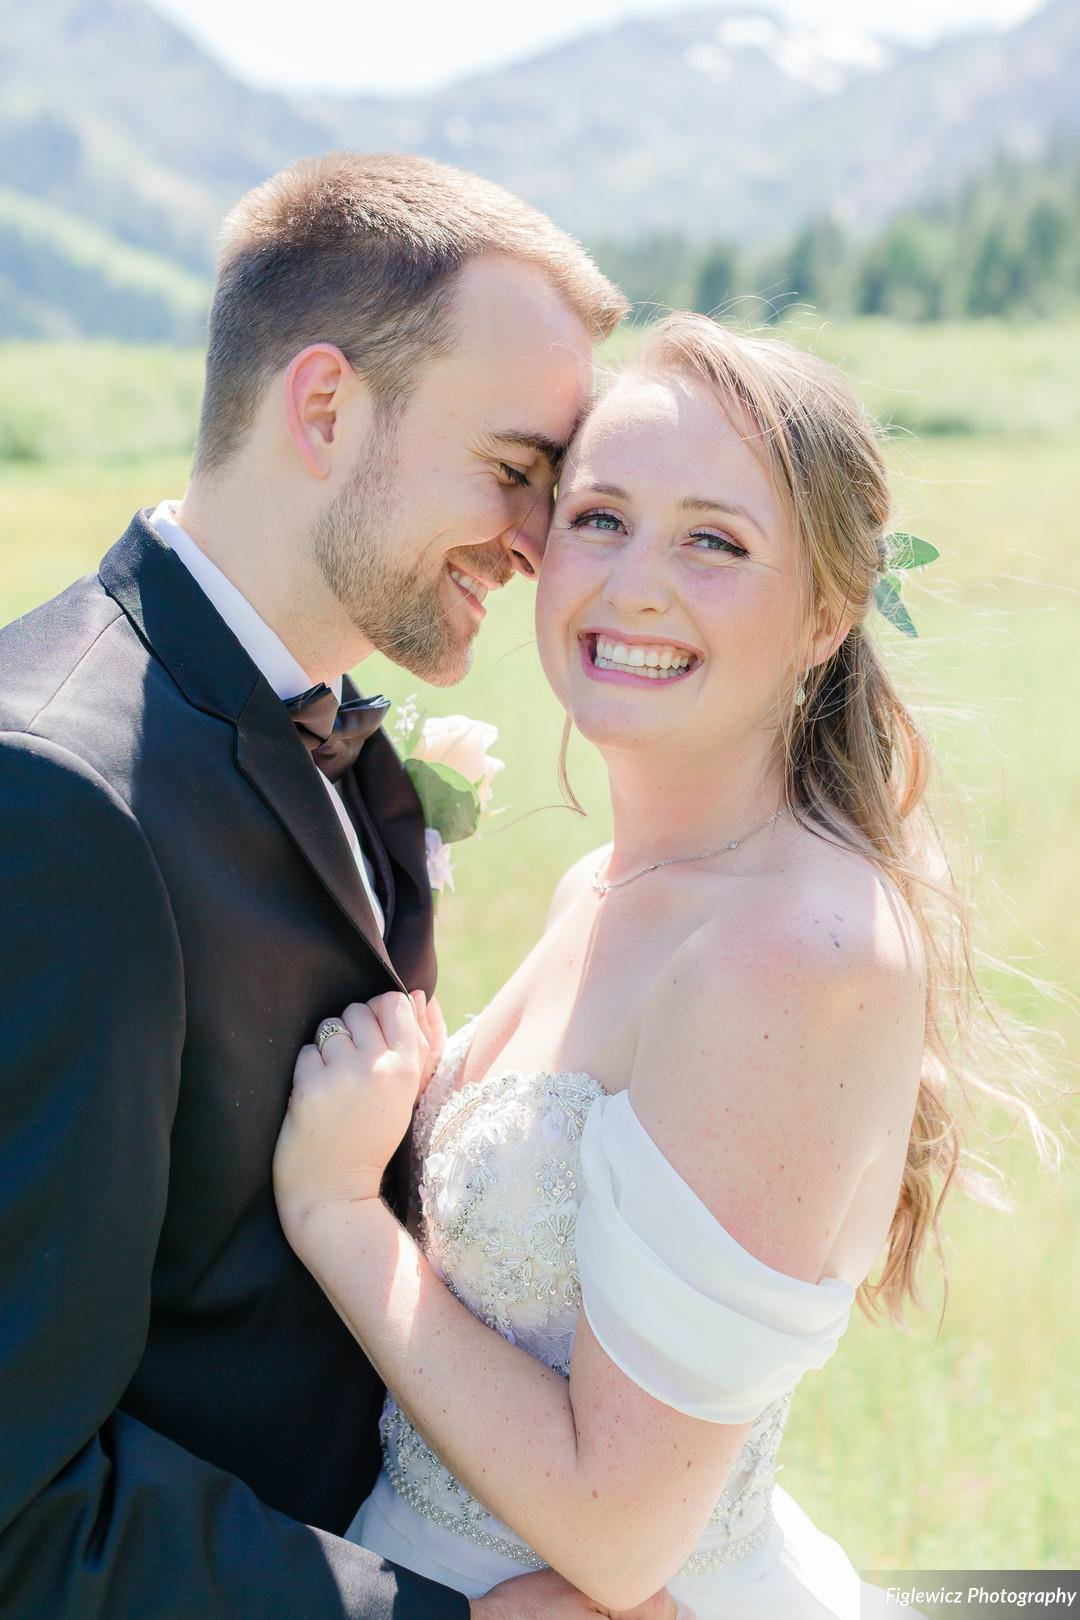 Garden_Tinsley_FiglewiczPhotography_LakeTahoeWeddingSquawValleyCreekTaylorBrendan00031_big